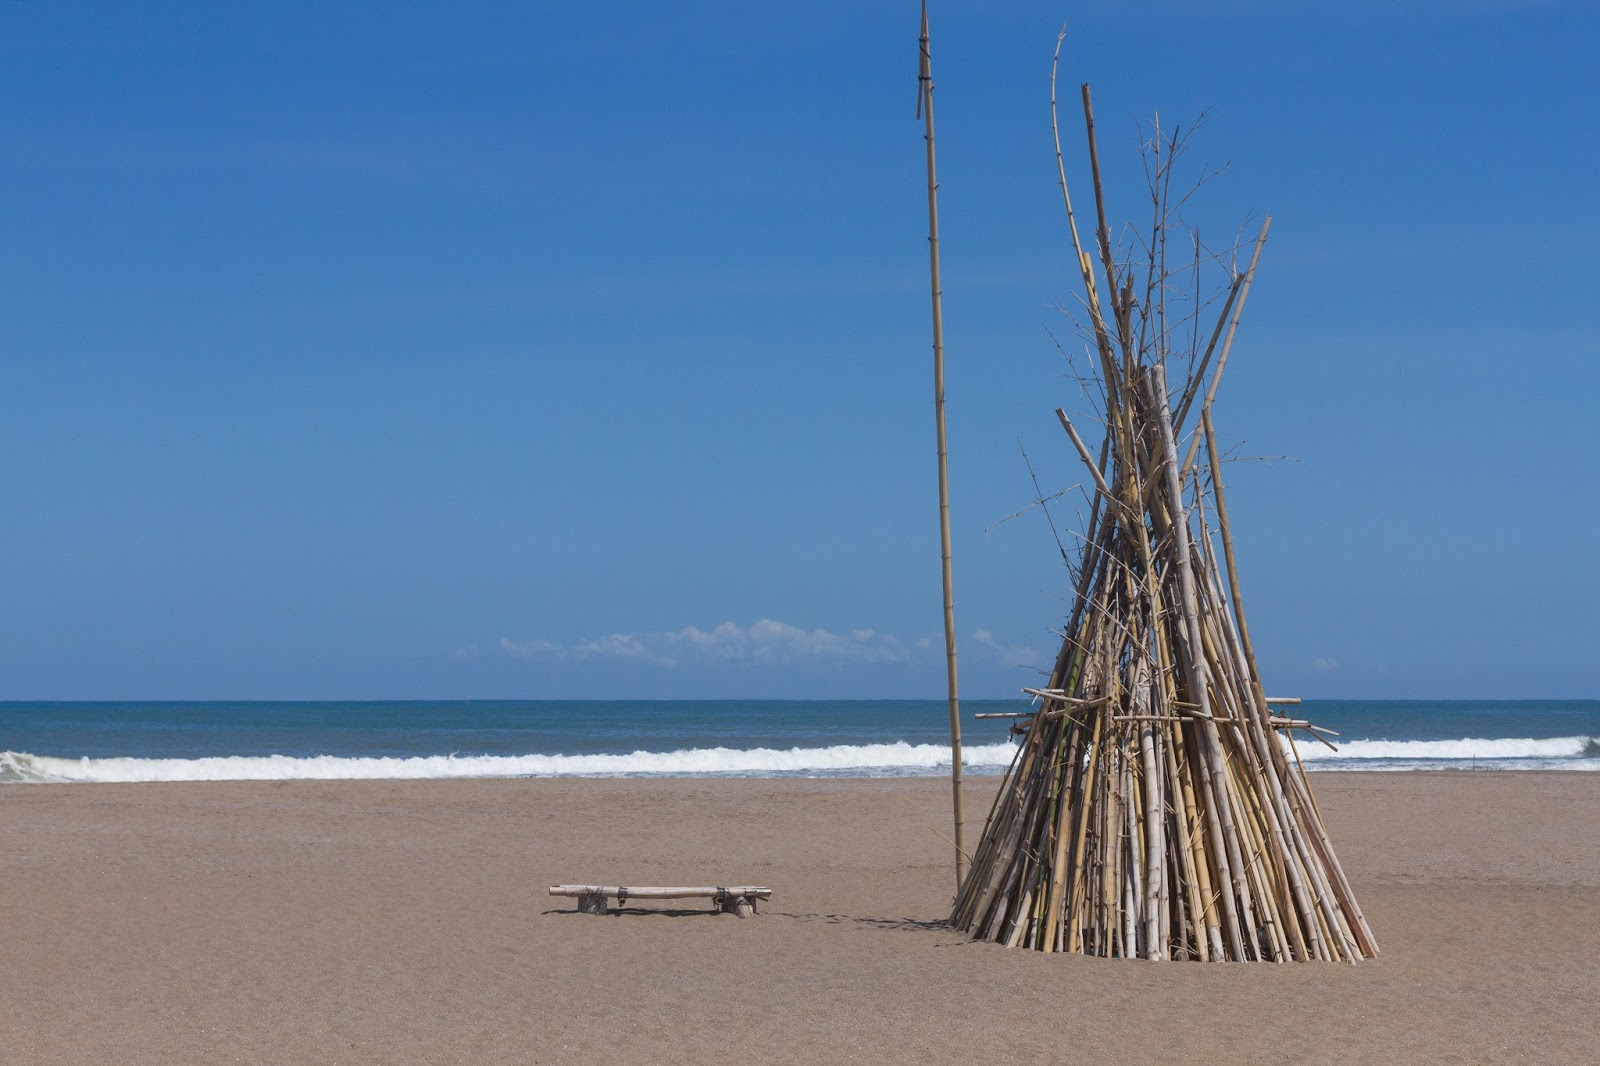 tipi at Berawa Beach in Canggu, Bali